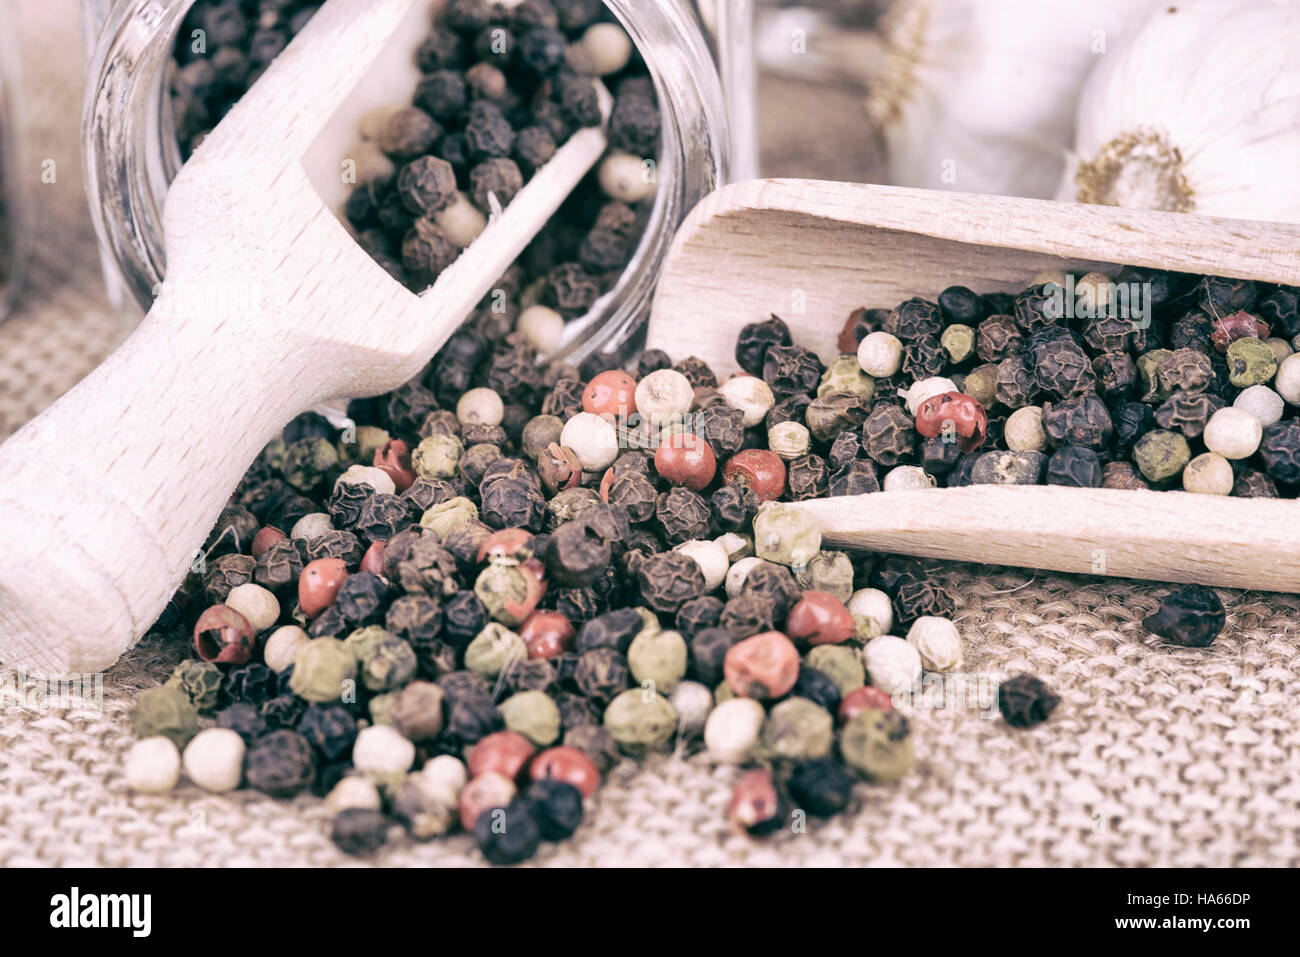 pepper stored in the container - Stock Image